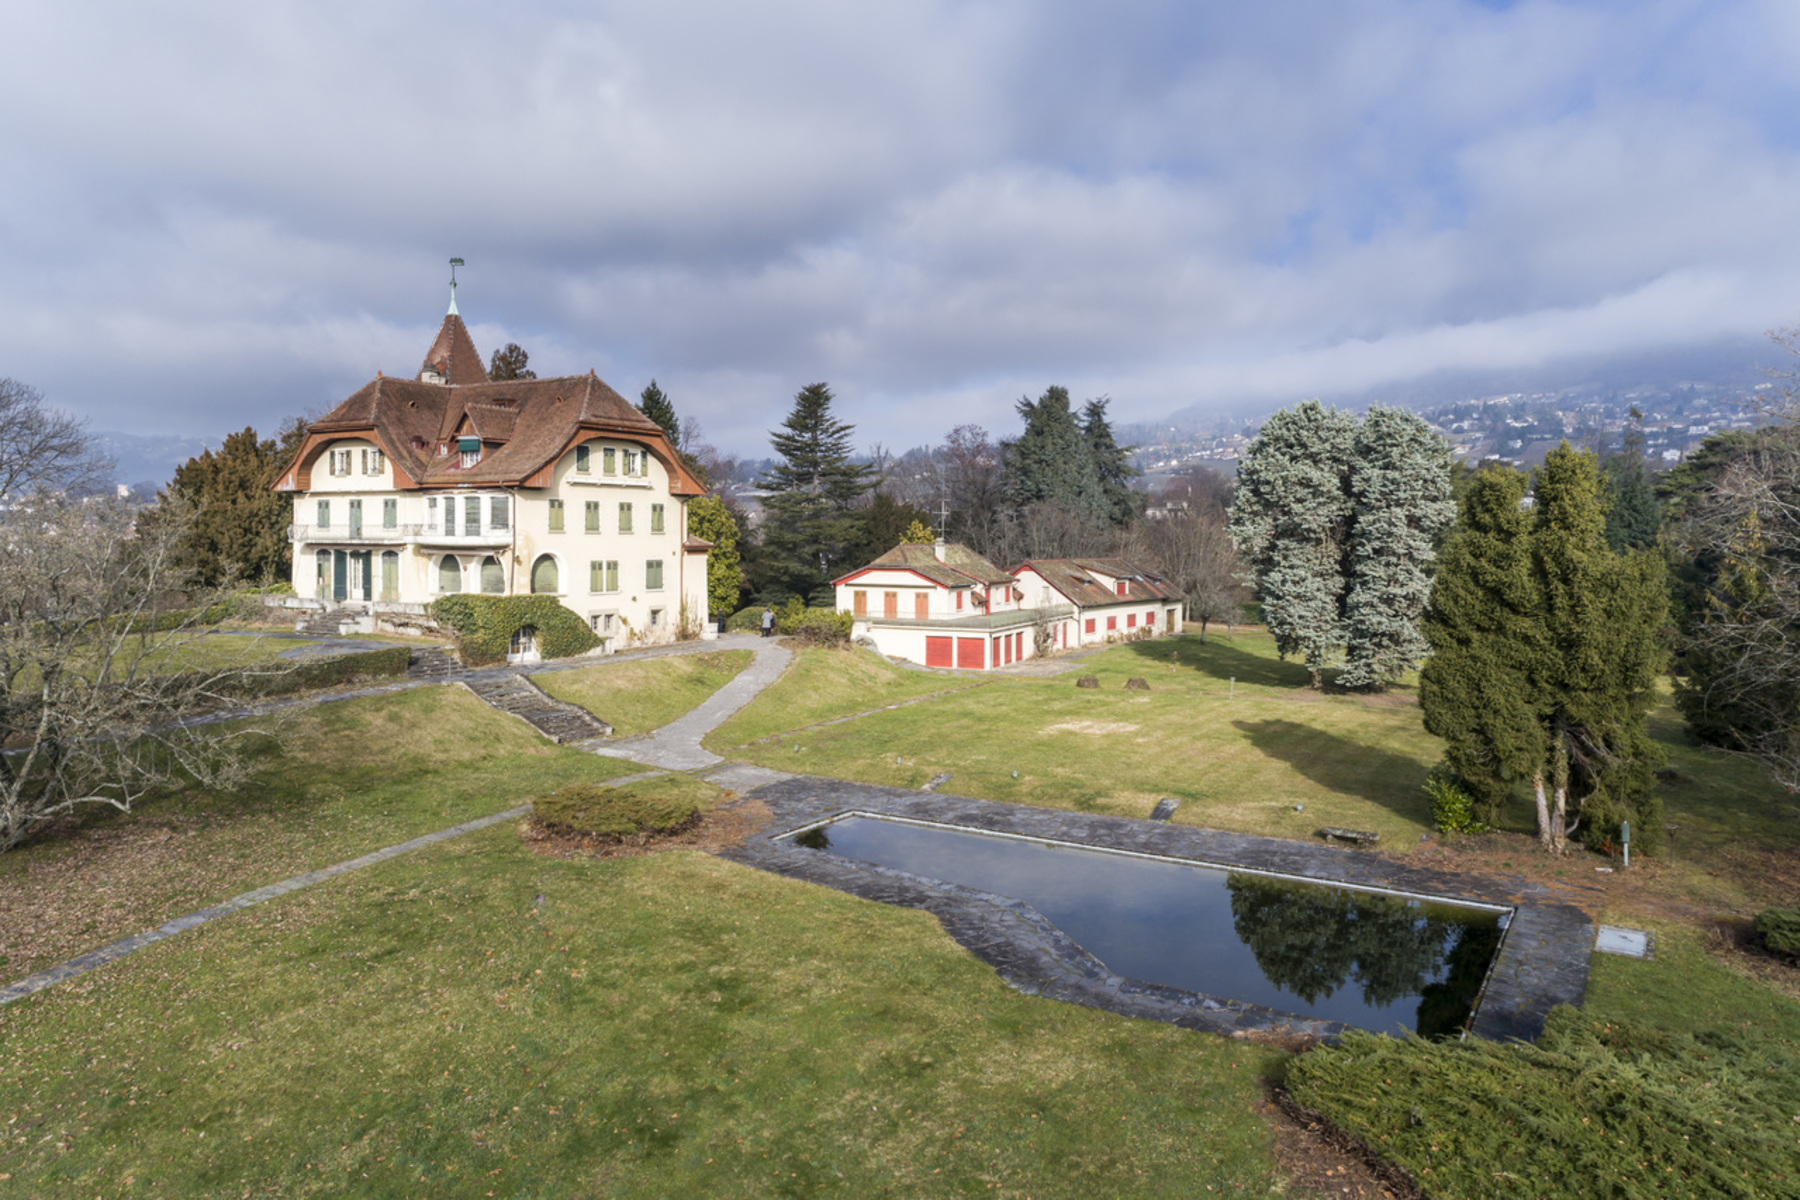 Single Family Homes for Sale at Mansion situated amid extensive leafy grounds Clarens / Montreux Montreux, Vaud 1820 Switzerland